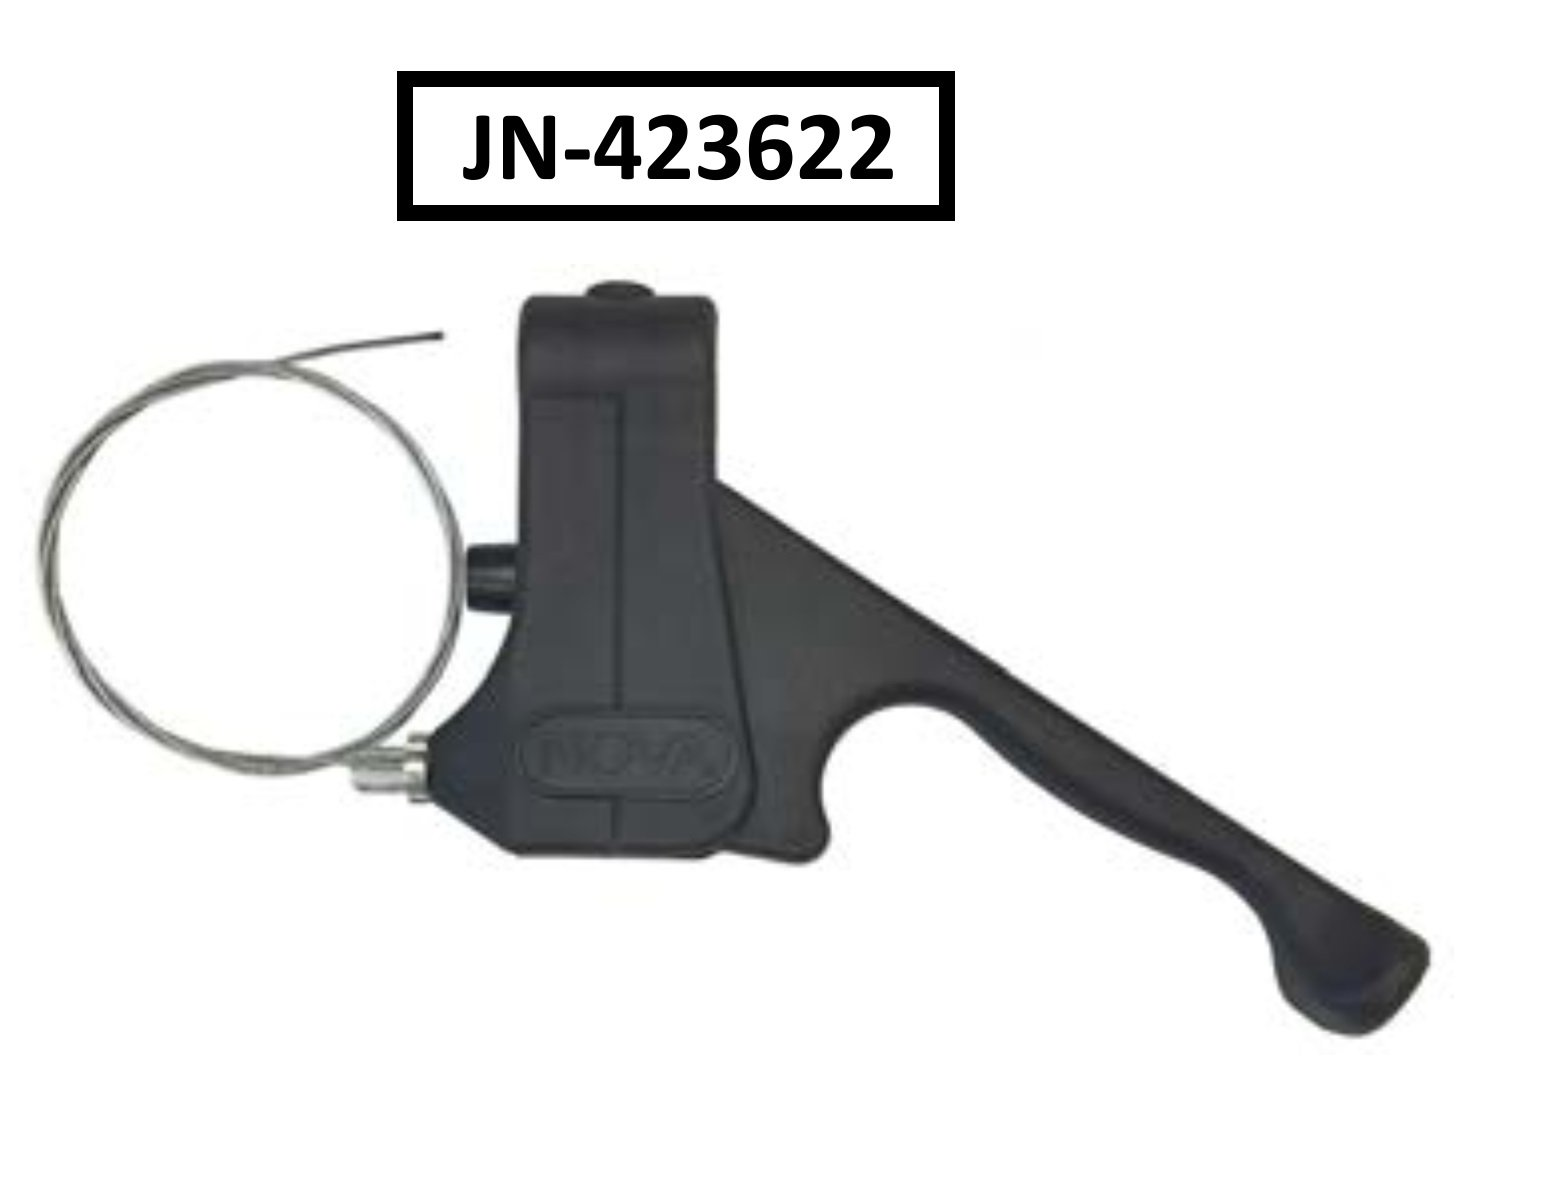 Nova Replacement Parts for Vibe Rolling Walker with Serial Number JN - Hand Brake with Cable-Set - JN-423622